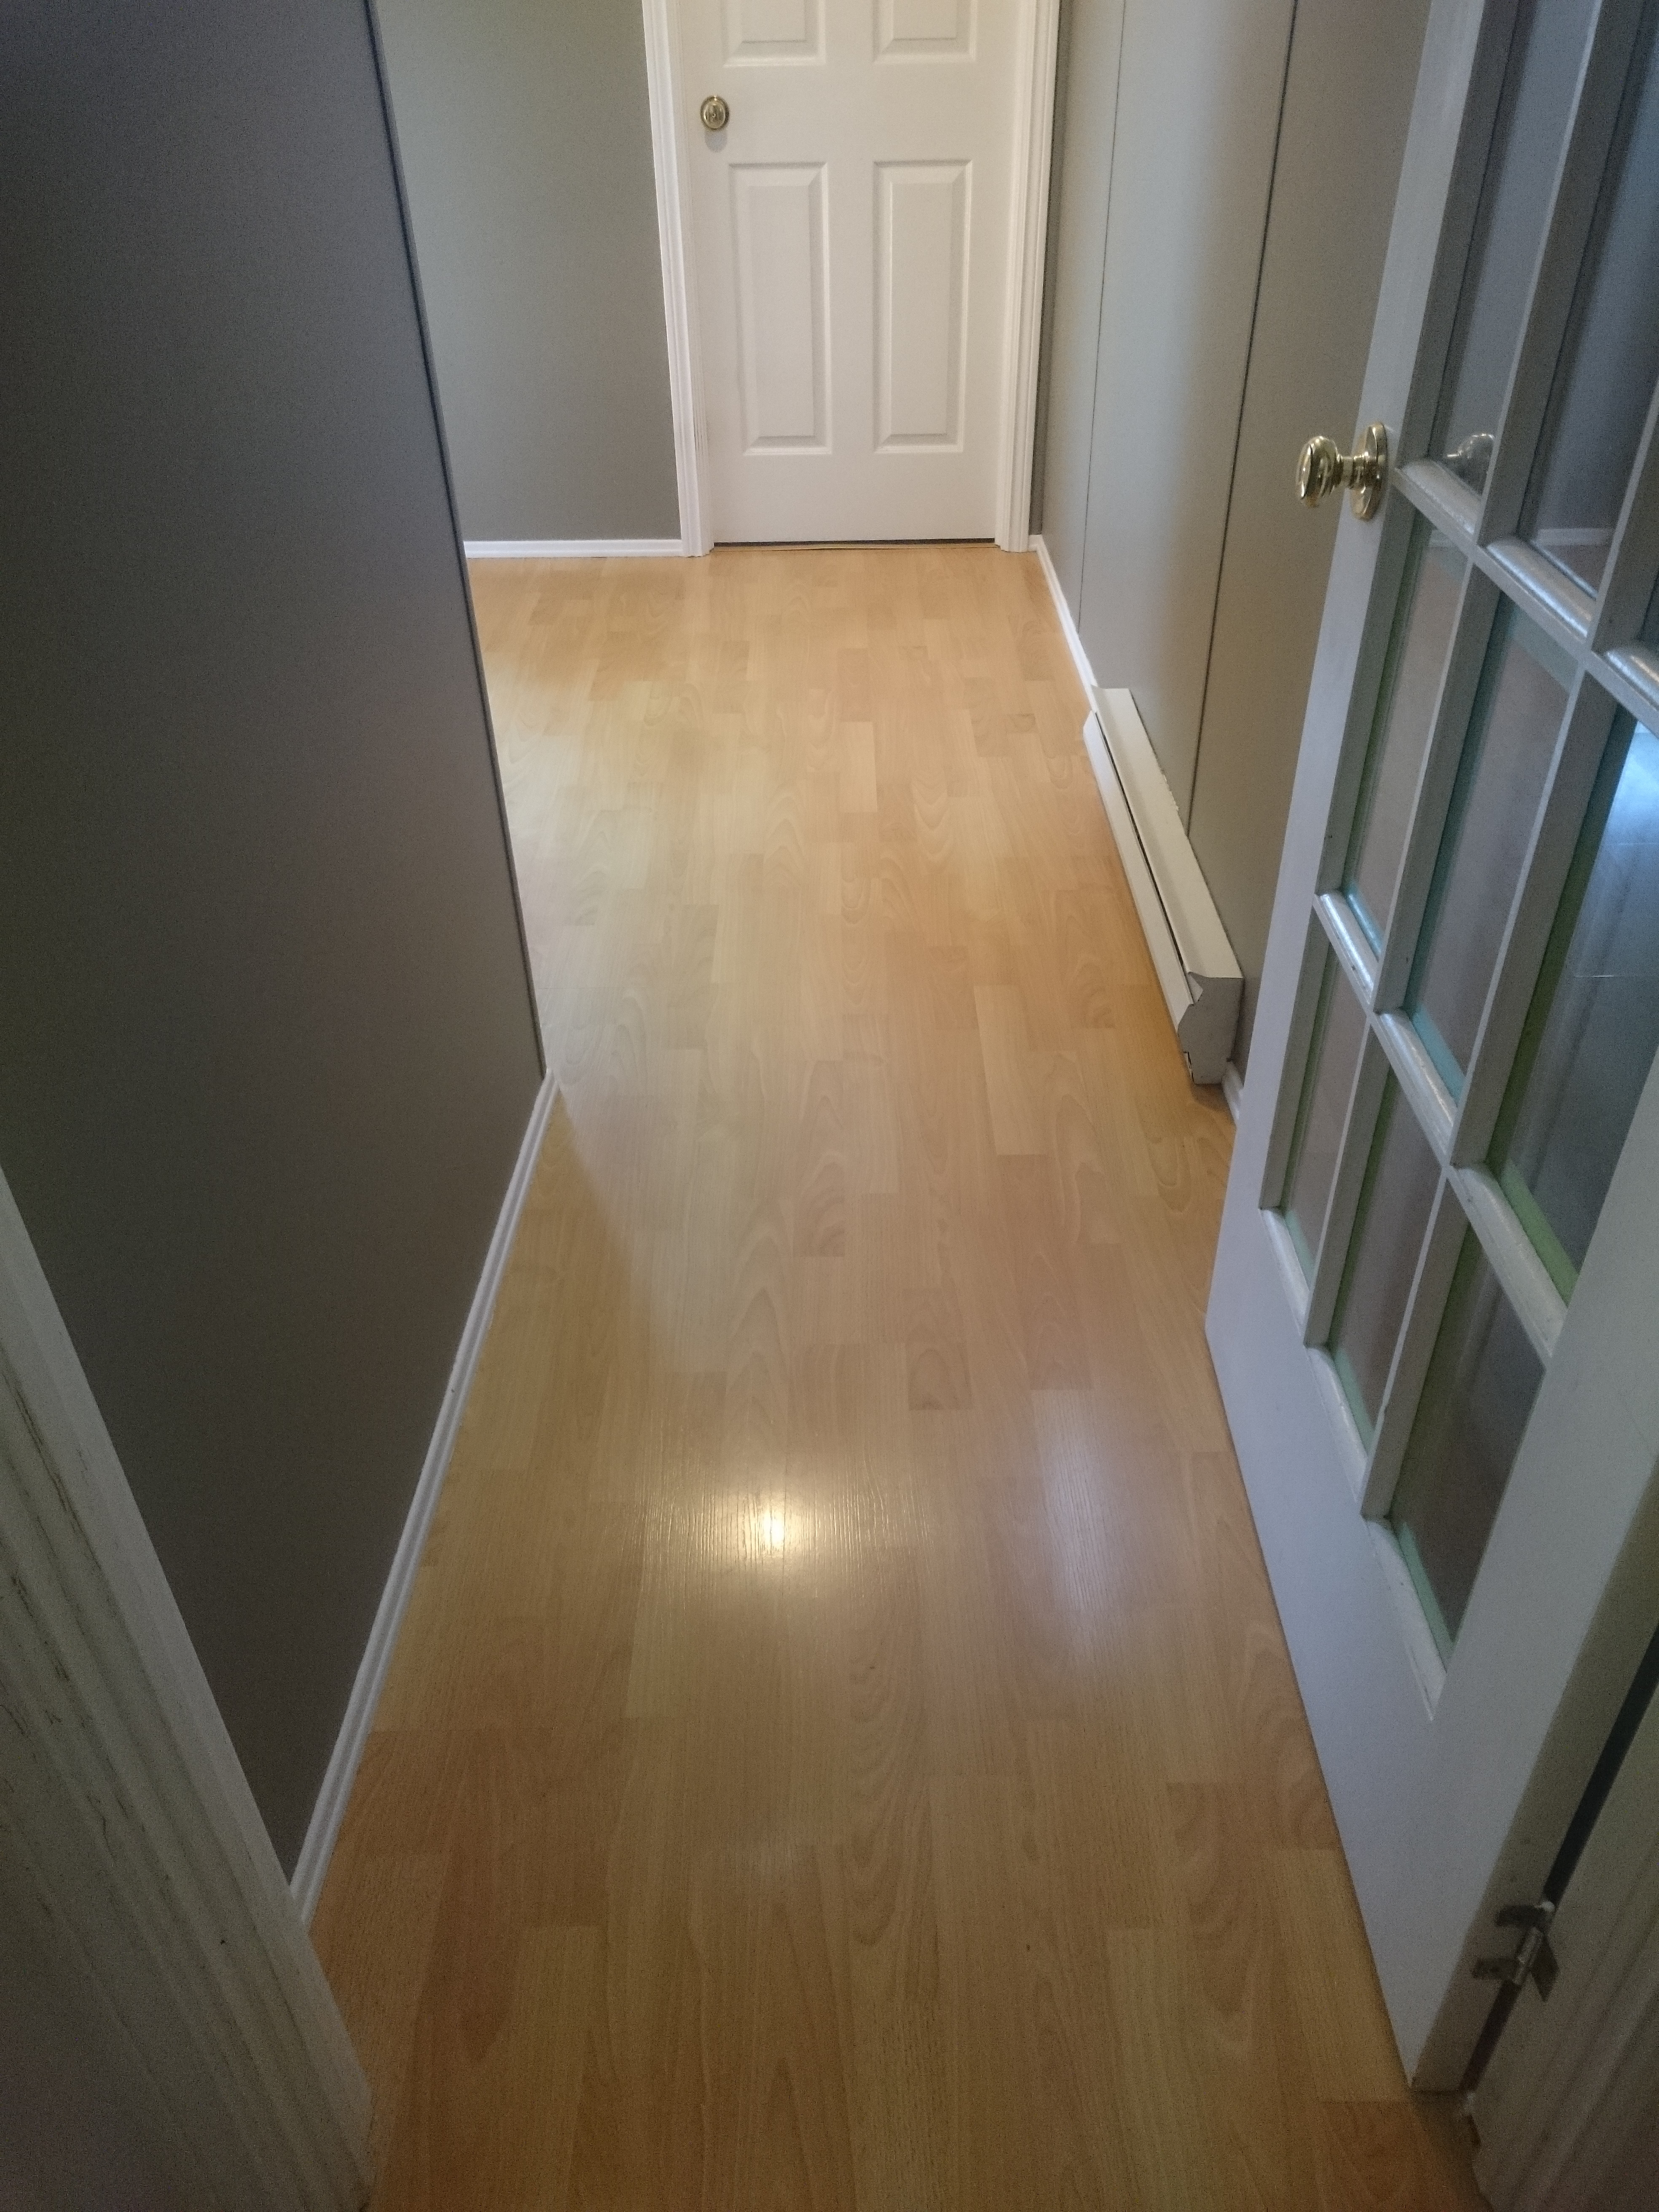 best floor is you floors all clean have harsh not chemicals way to works great them but do only natural laminate diy an need cleaner free pin easy of thieves any the my and